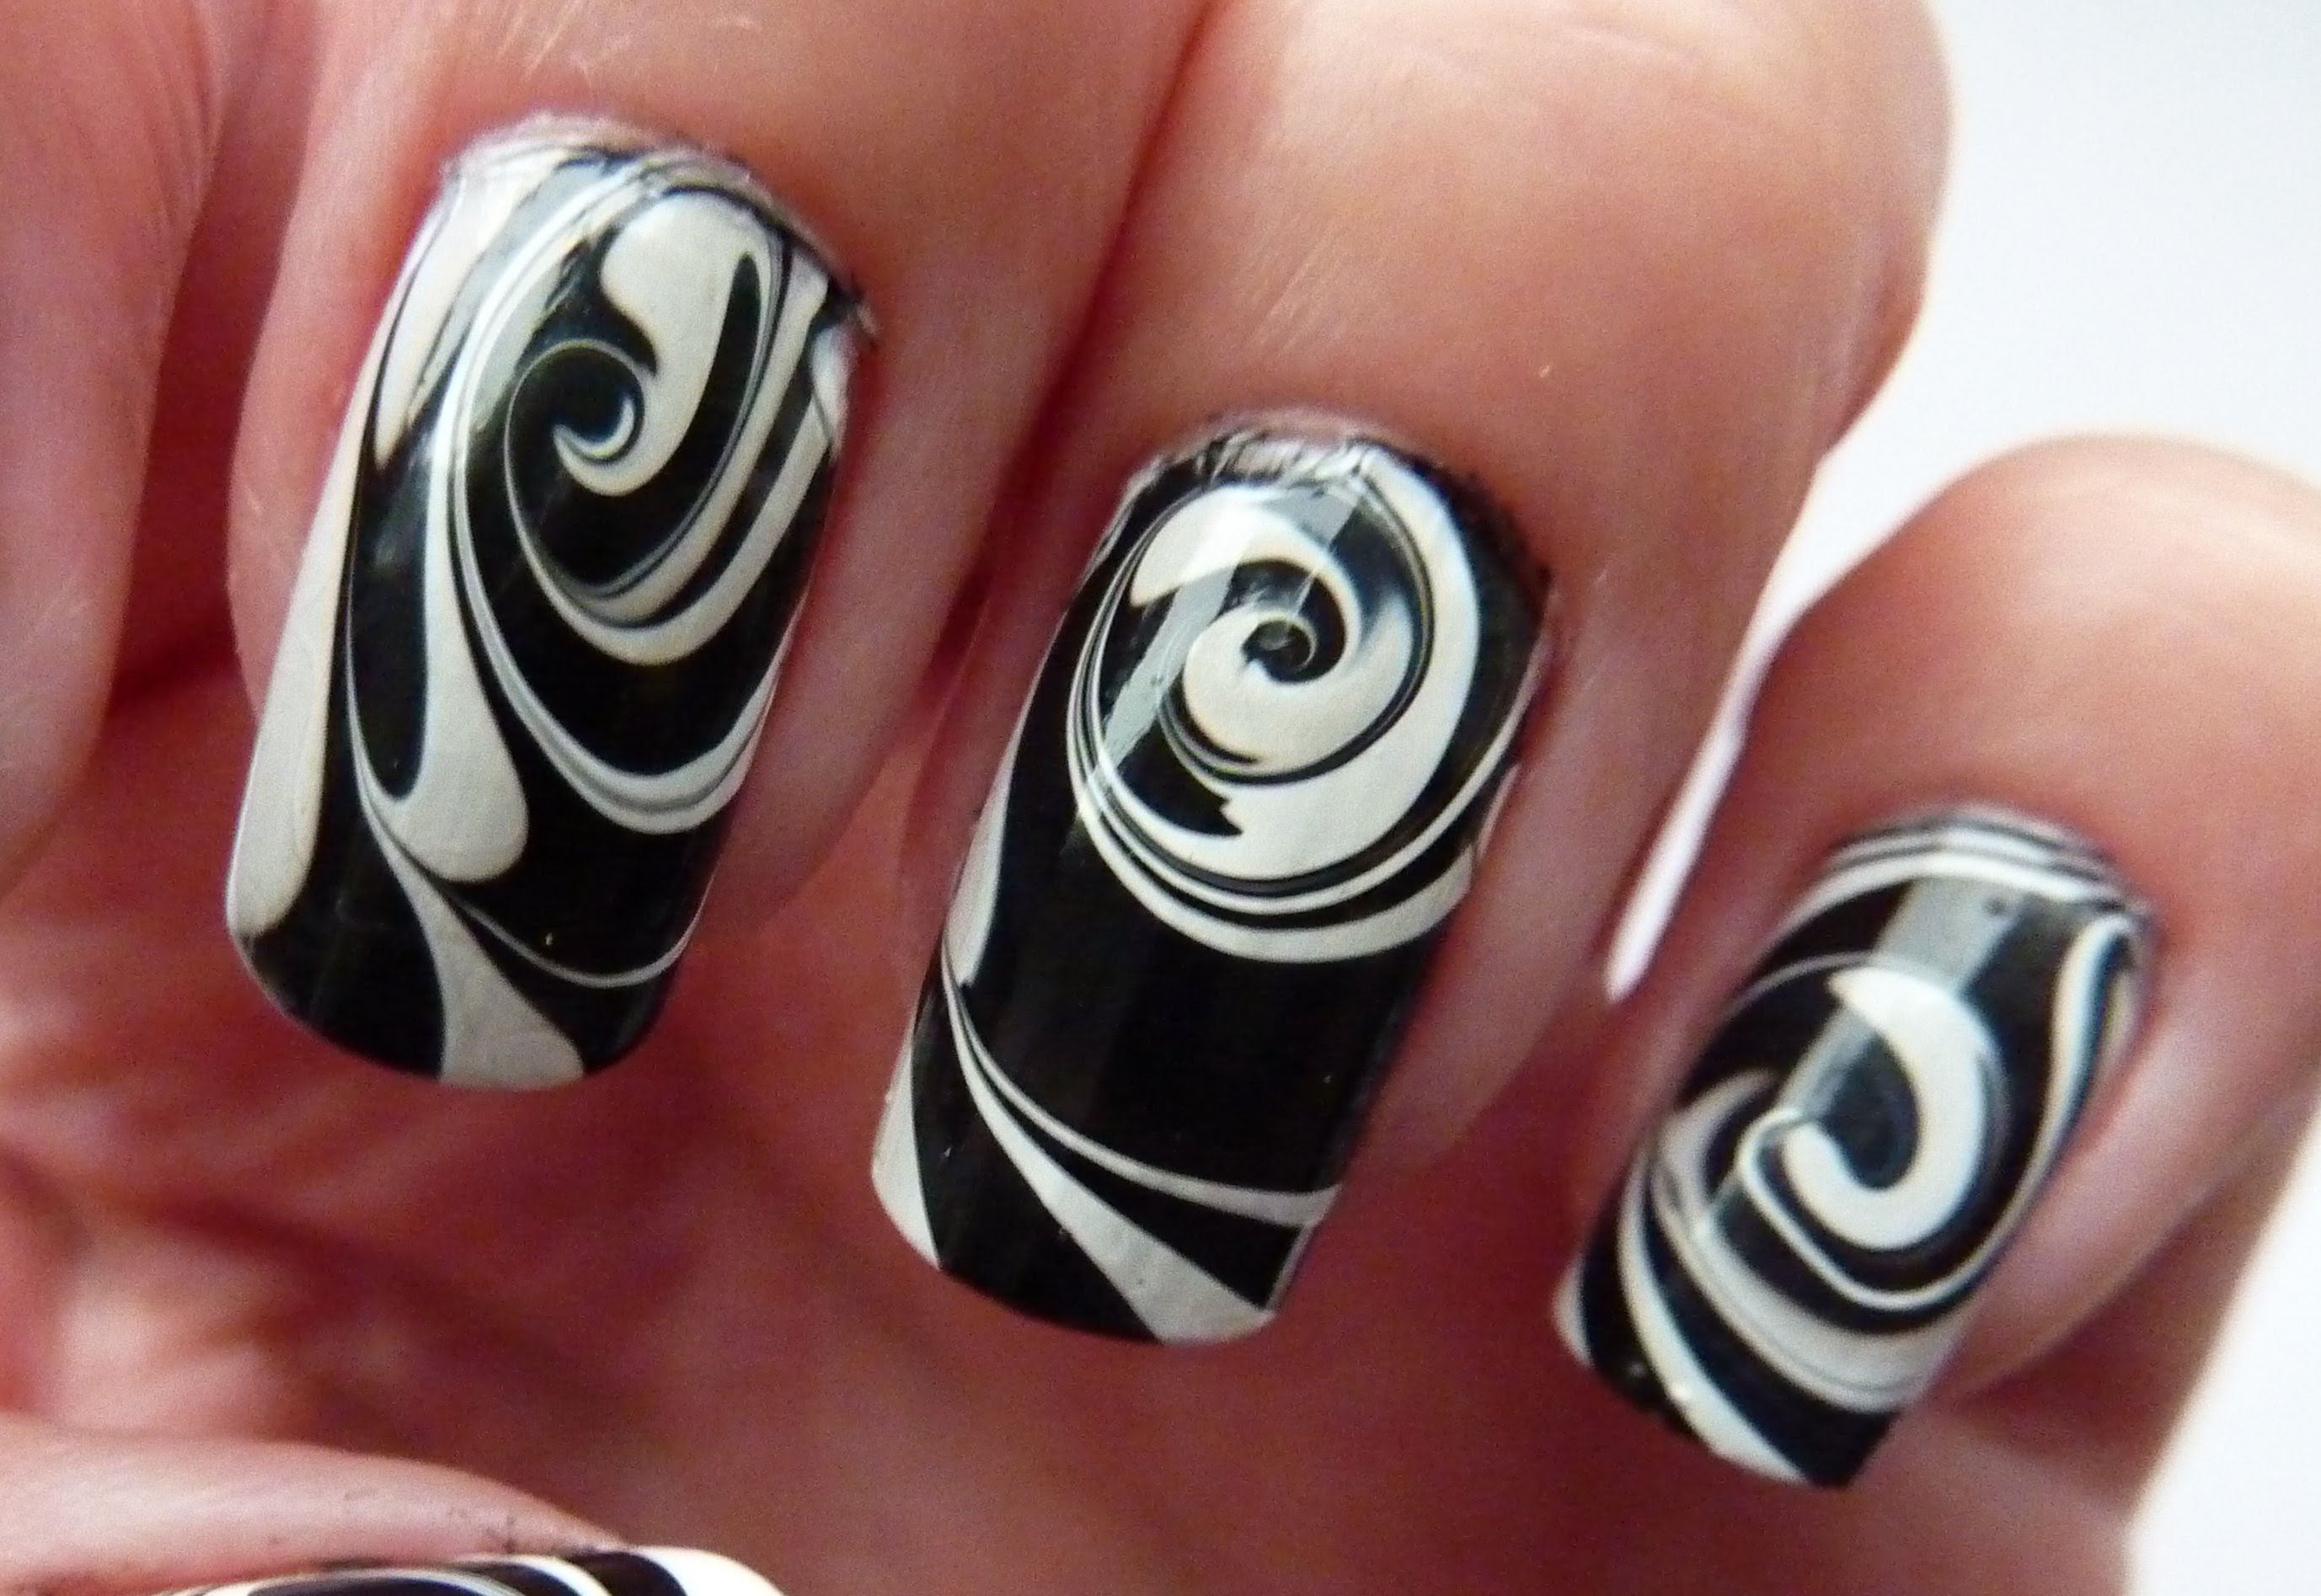 This Beautiful Water Marble Nail Art Design Is Hypnotizing!